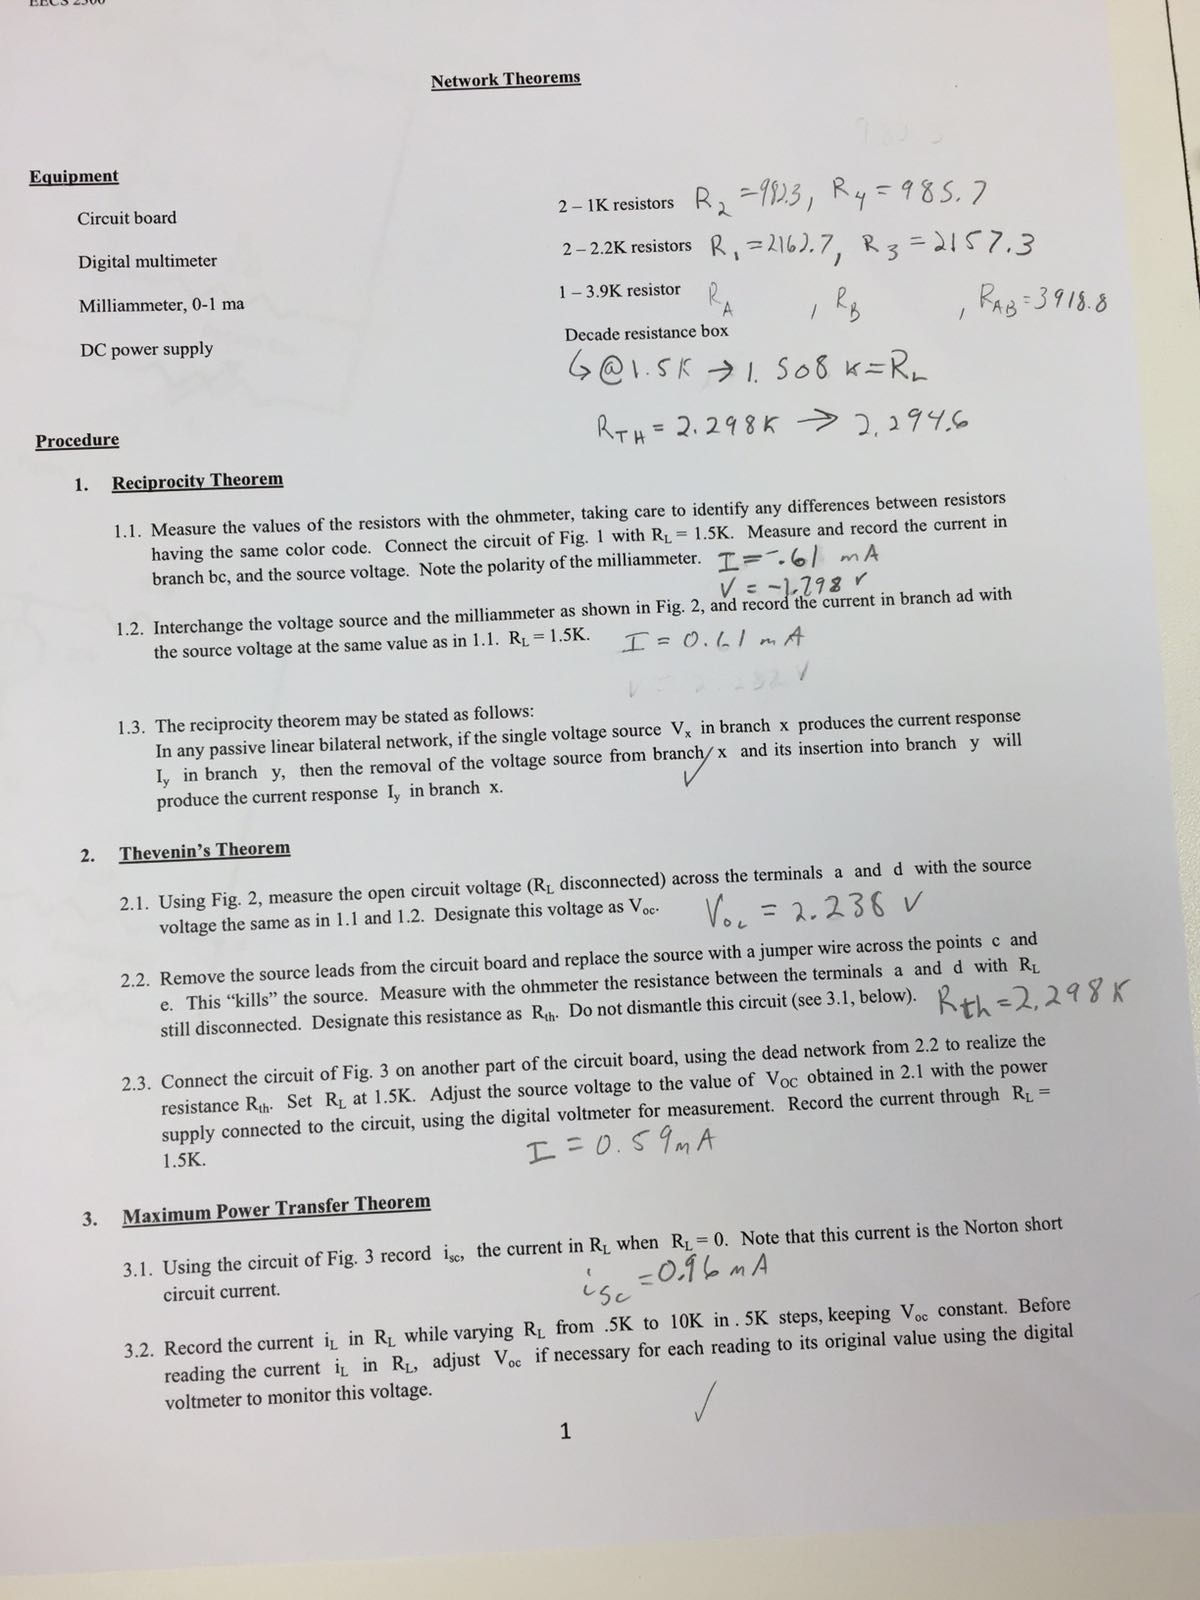 network theorems questions and answers pdf